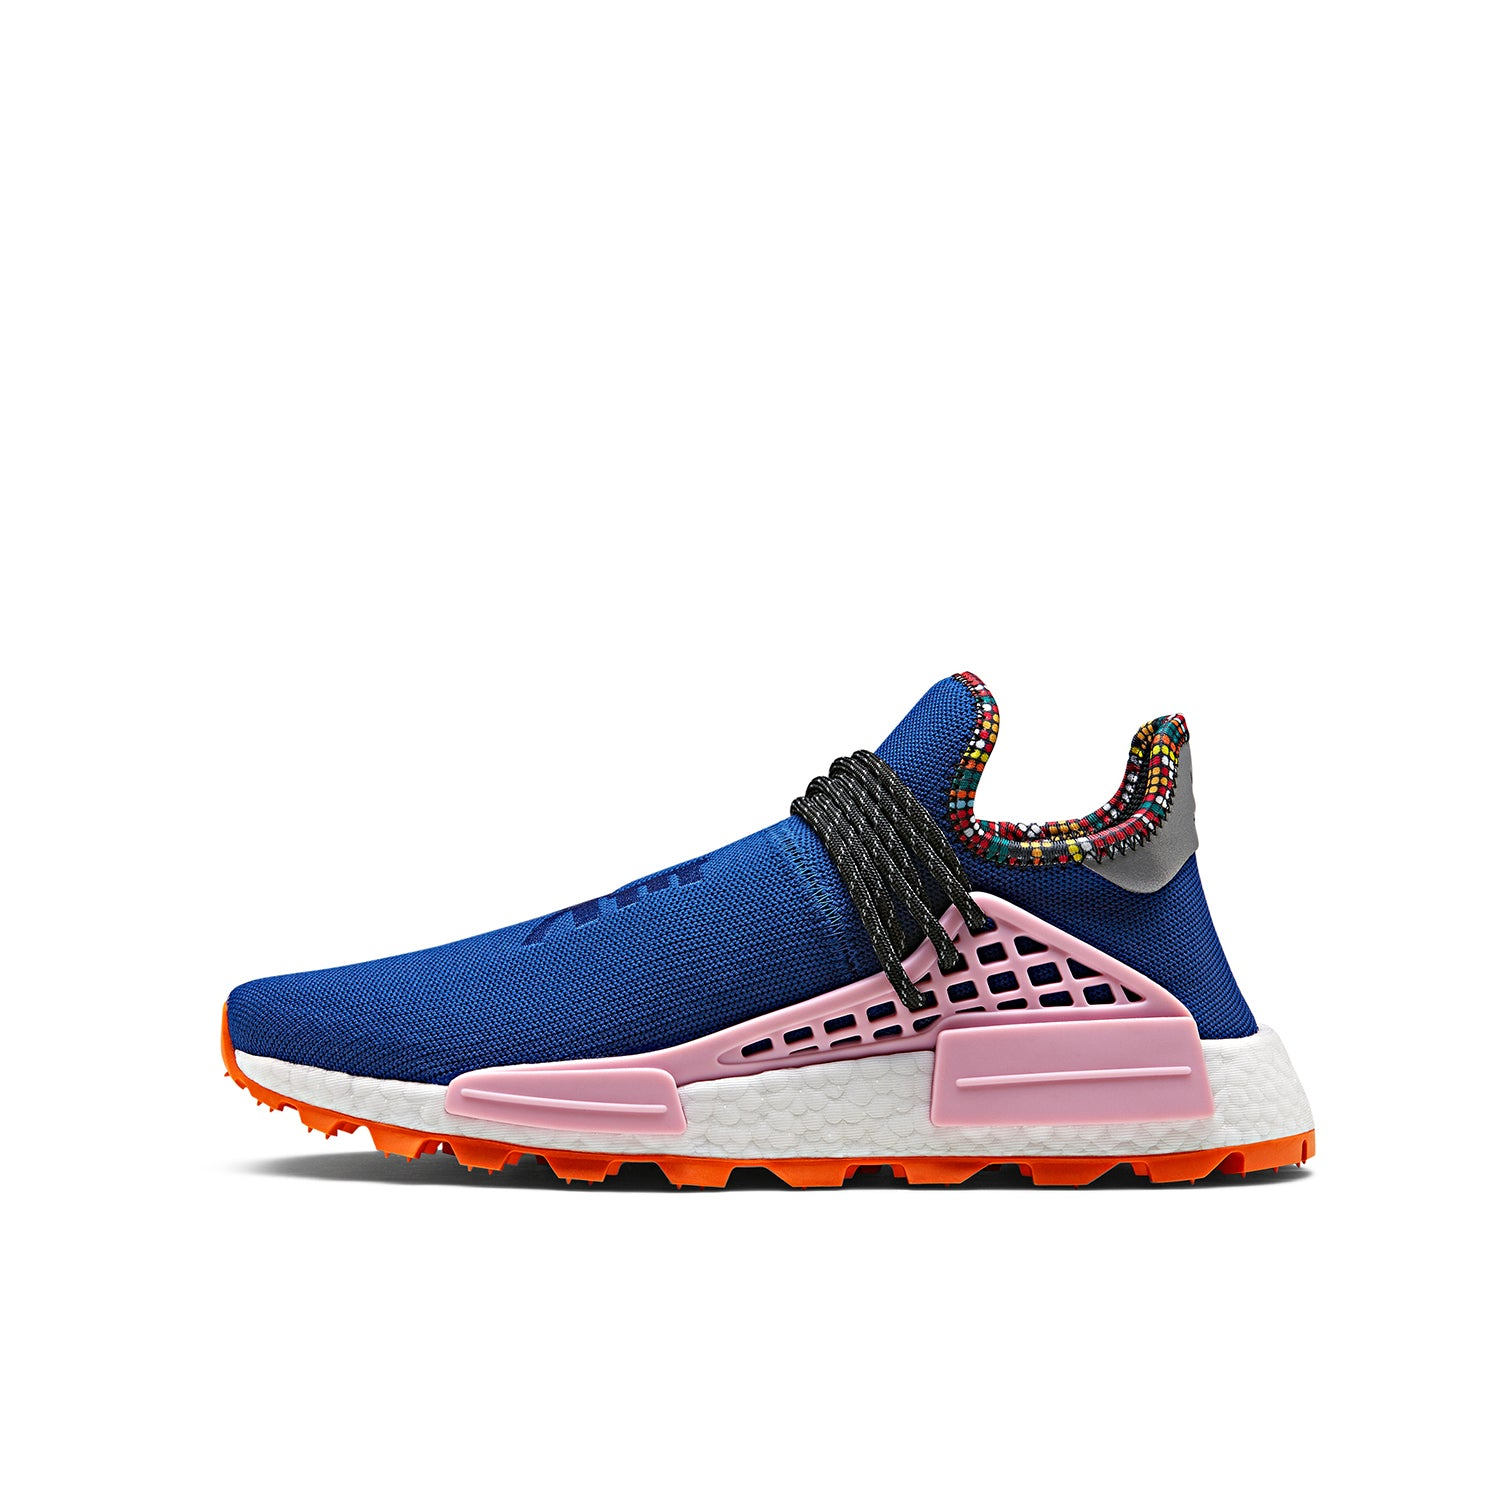 info for 25157 6e9c5 adidas Originals x Pharrell Williams 'INSPIRATION' Solar HU NMD Powder Blue